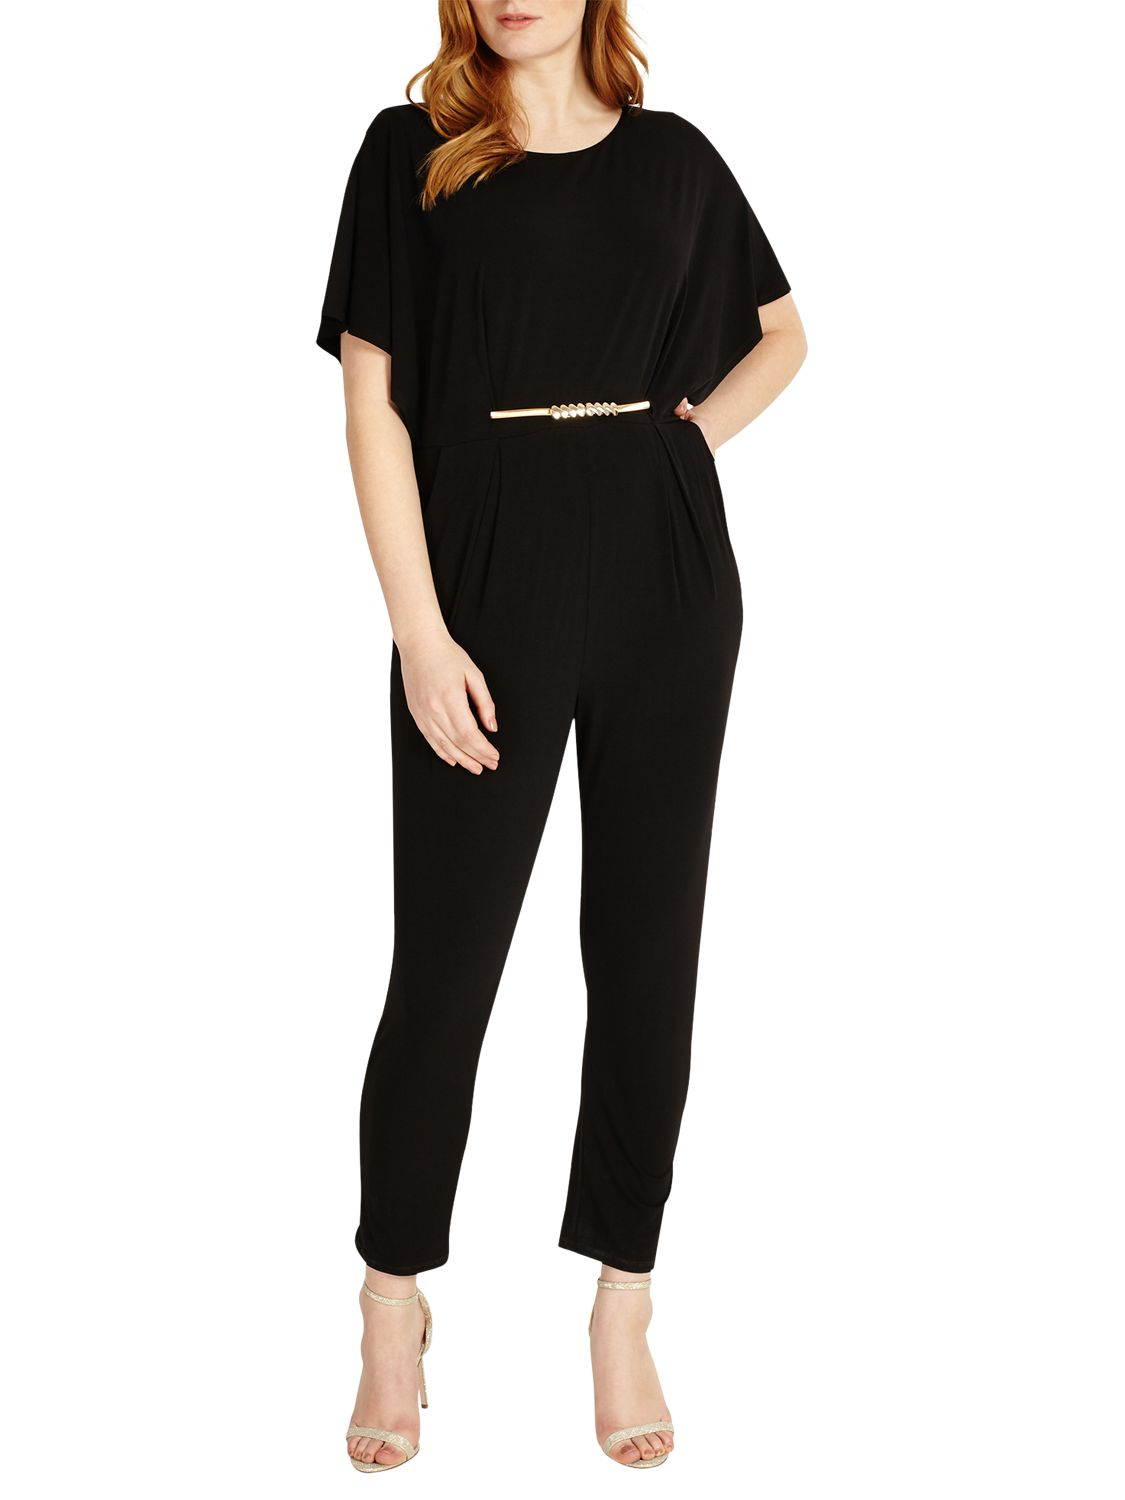 Studio 8 Studio 8 Claudia Jumpsuit, Black